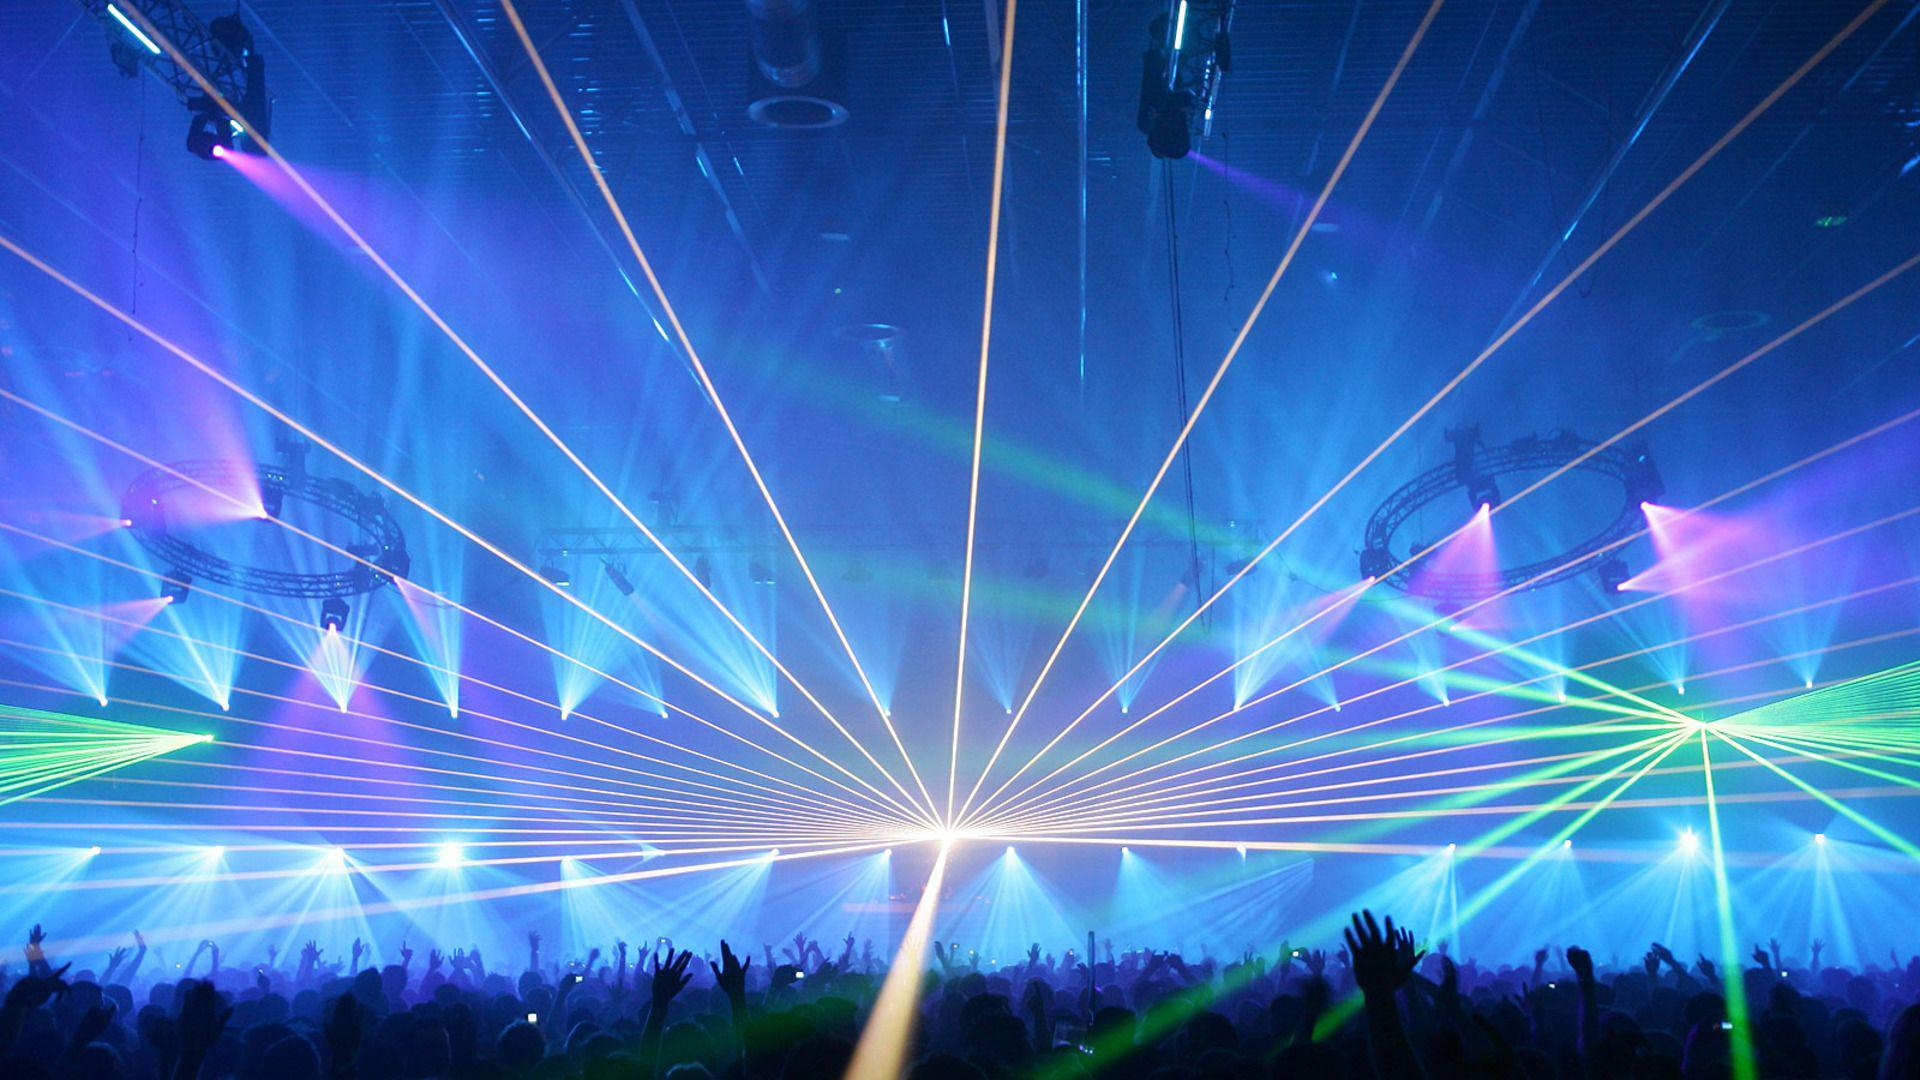 Cool N Cute Wallpapers For Mobile Laser Show Wallpaper Music Wallpaper Better